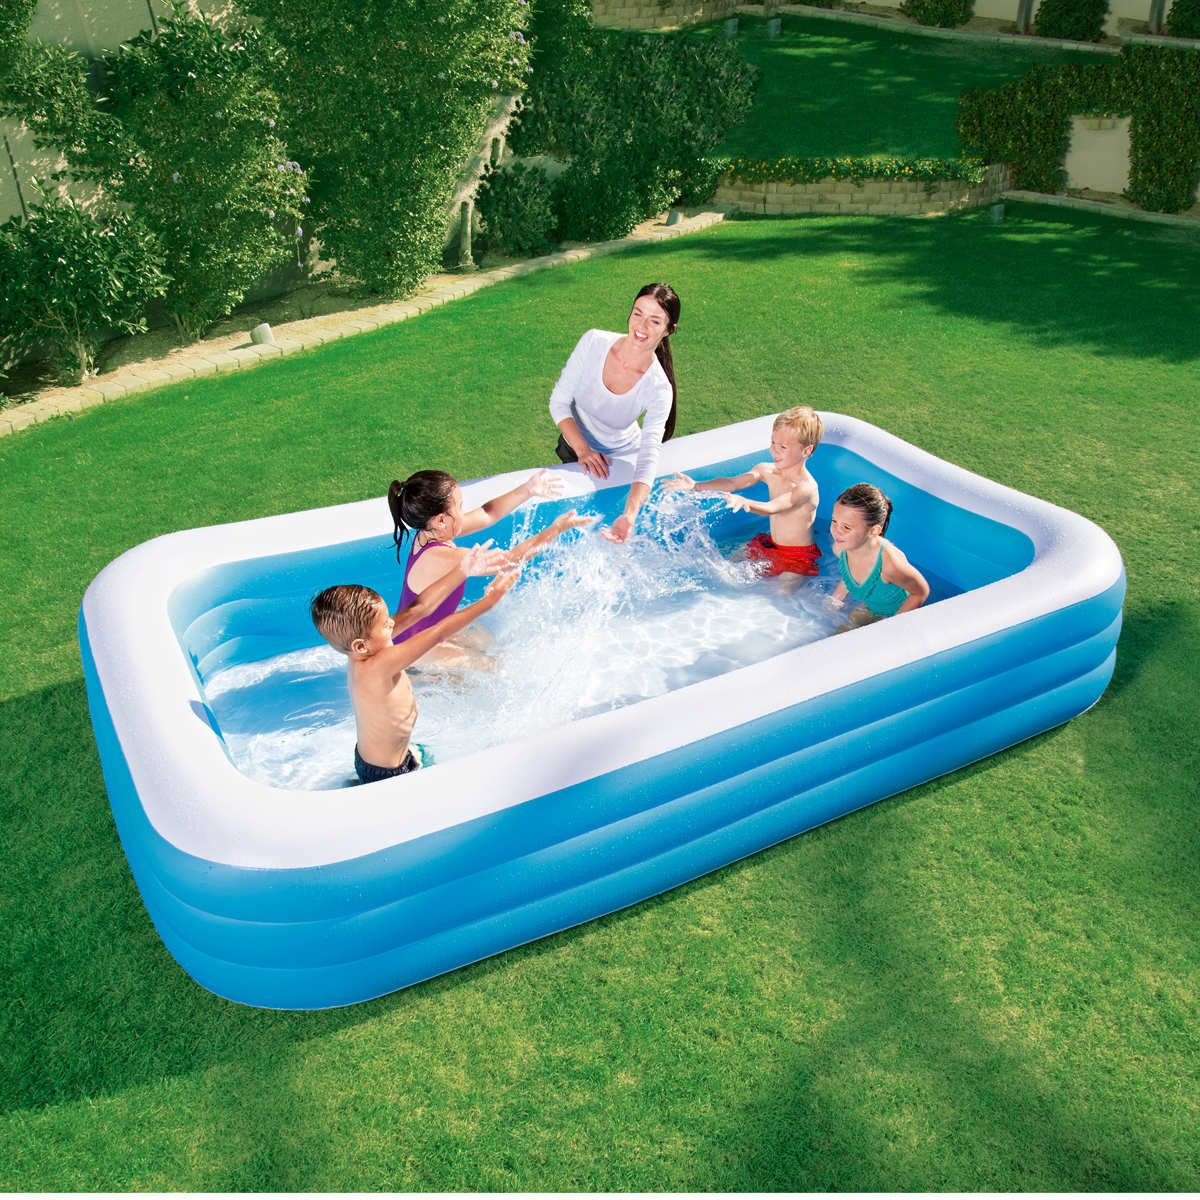 Inflatable Kiddie Pool 79x 59 x 20 Family Swimming for Adults Toddler Outdoor Play Summer Party